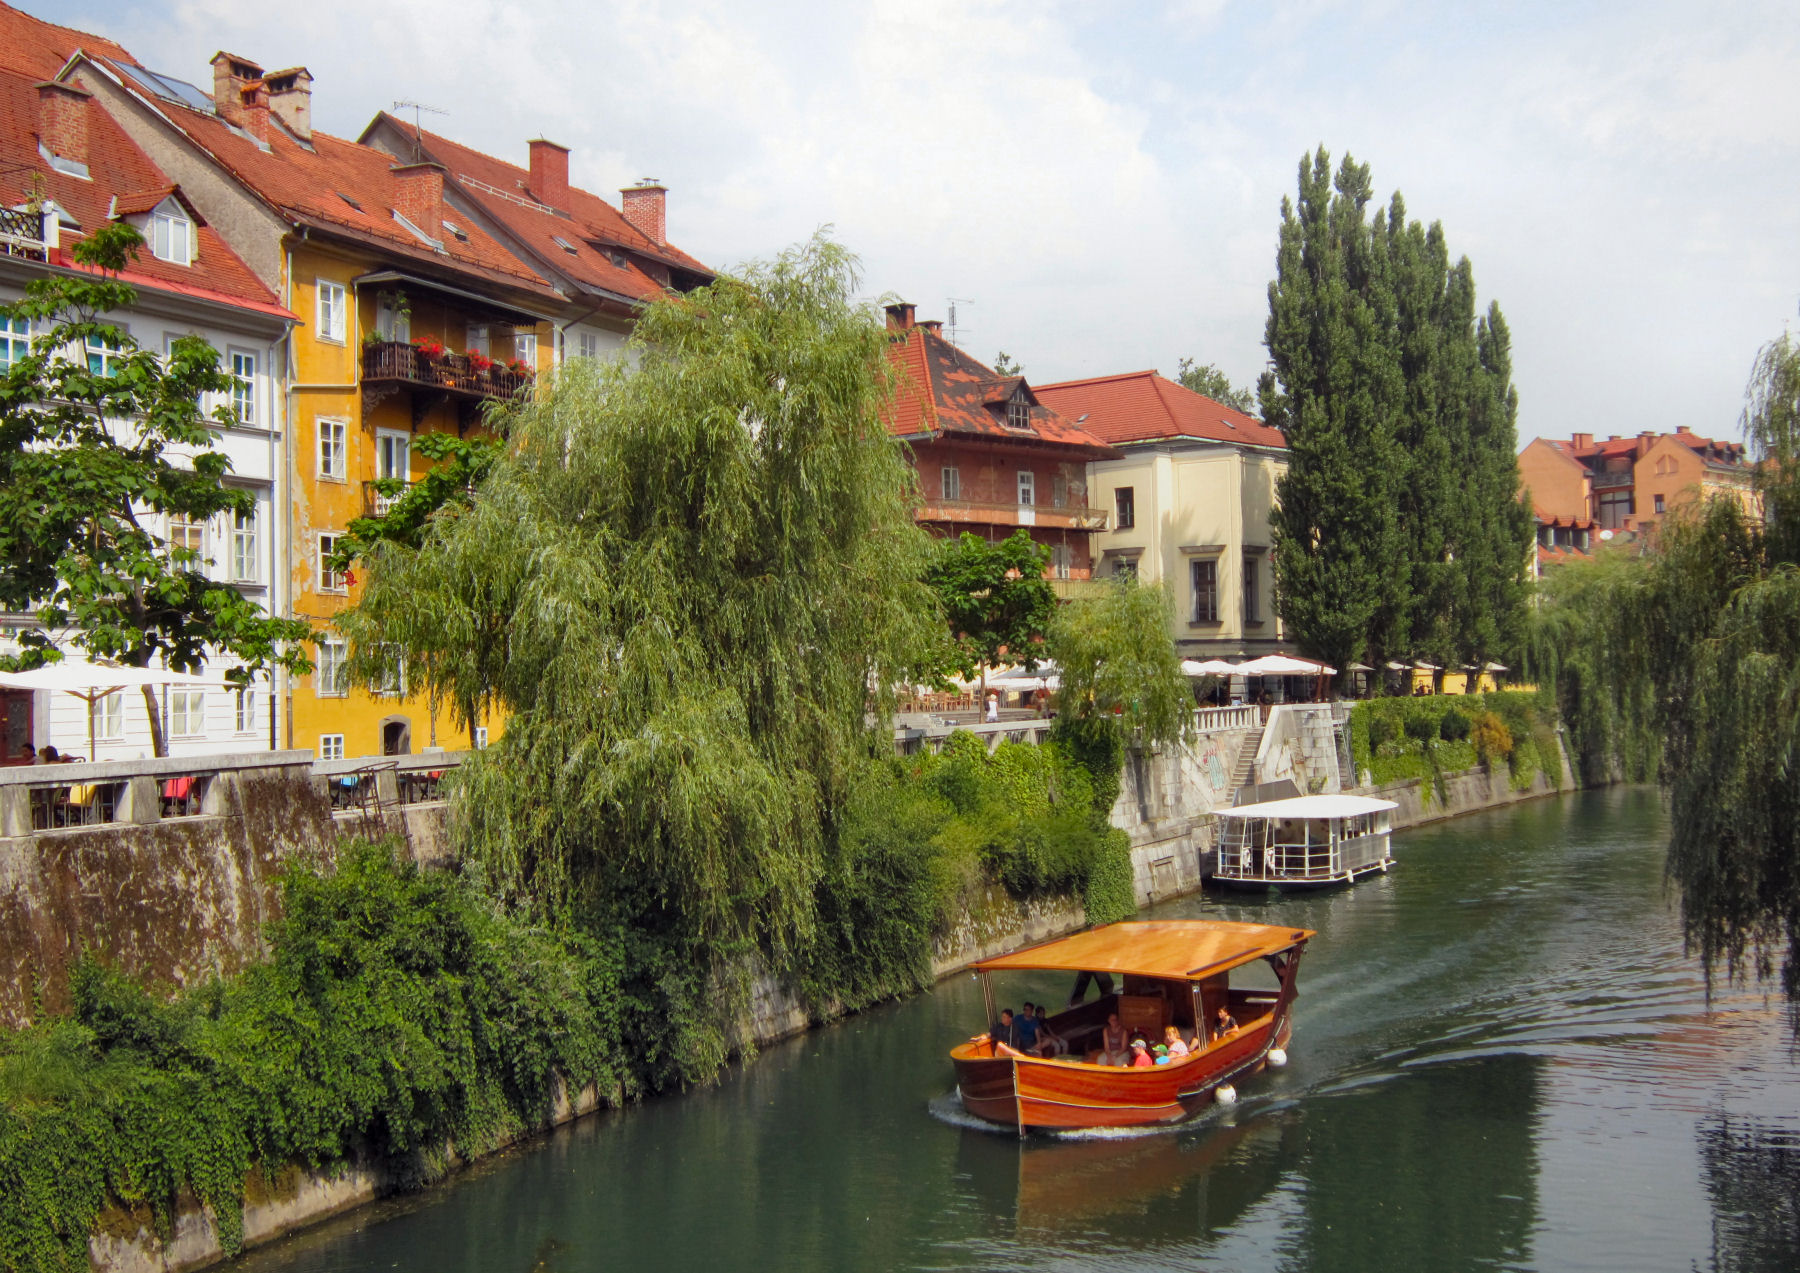 Tourist boats on the Ljubljanica river in Slovenia's capital city Ljubljana